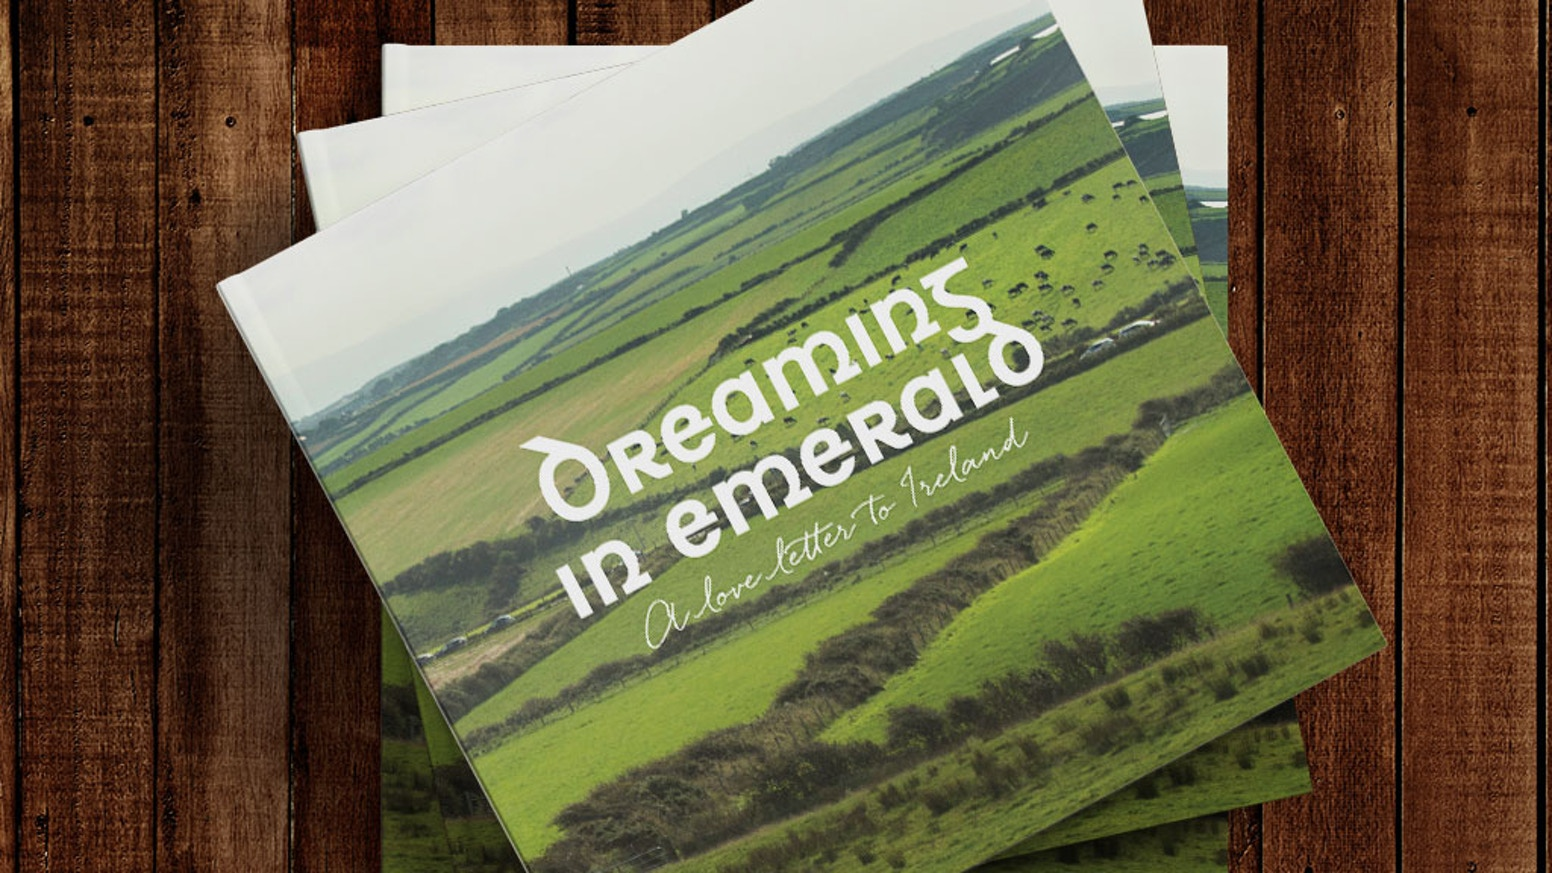 A photographic and illustrative travel book about what it feels like to visit Ireland.